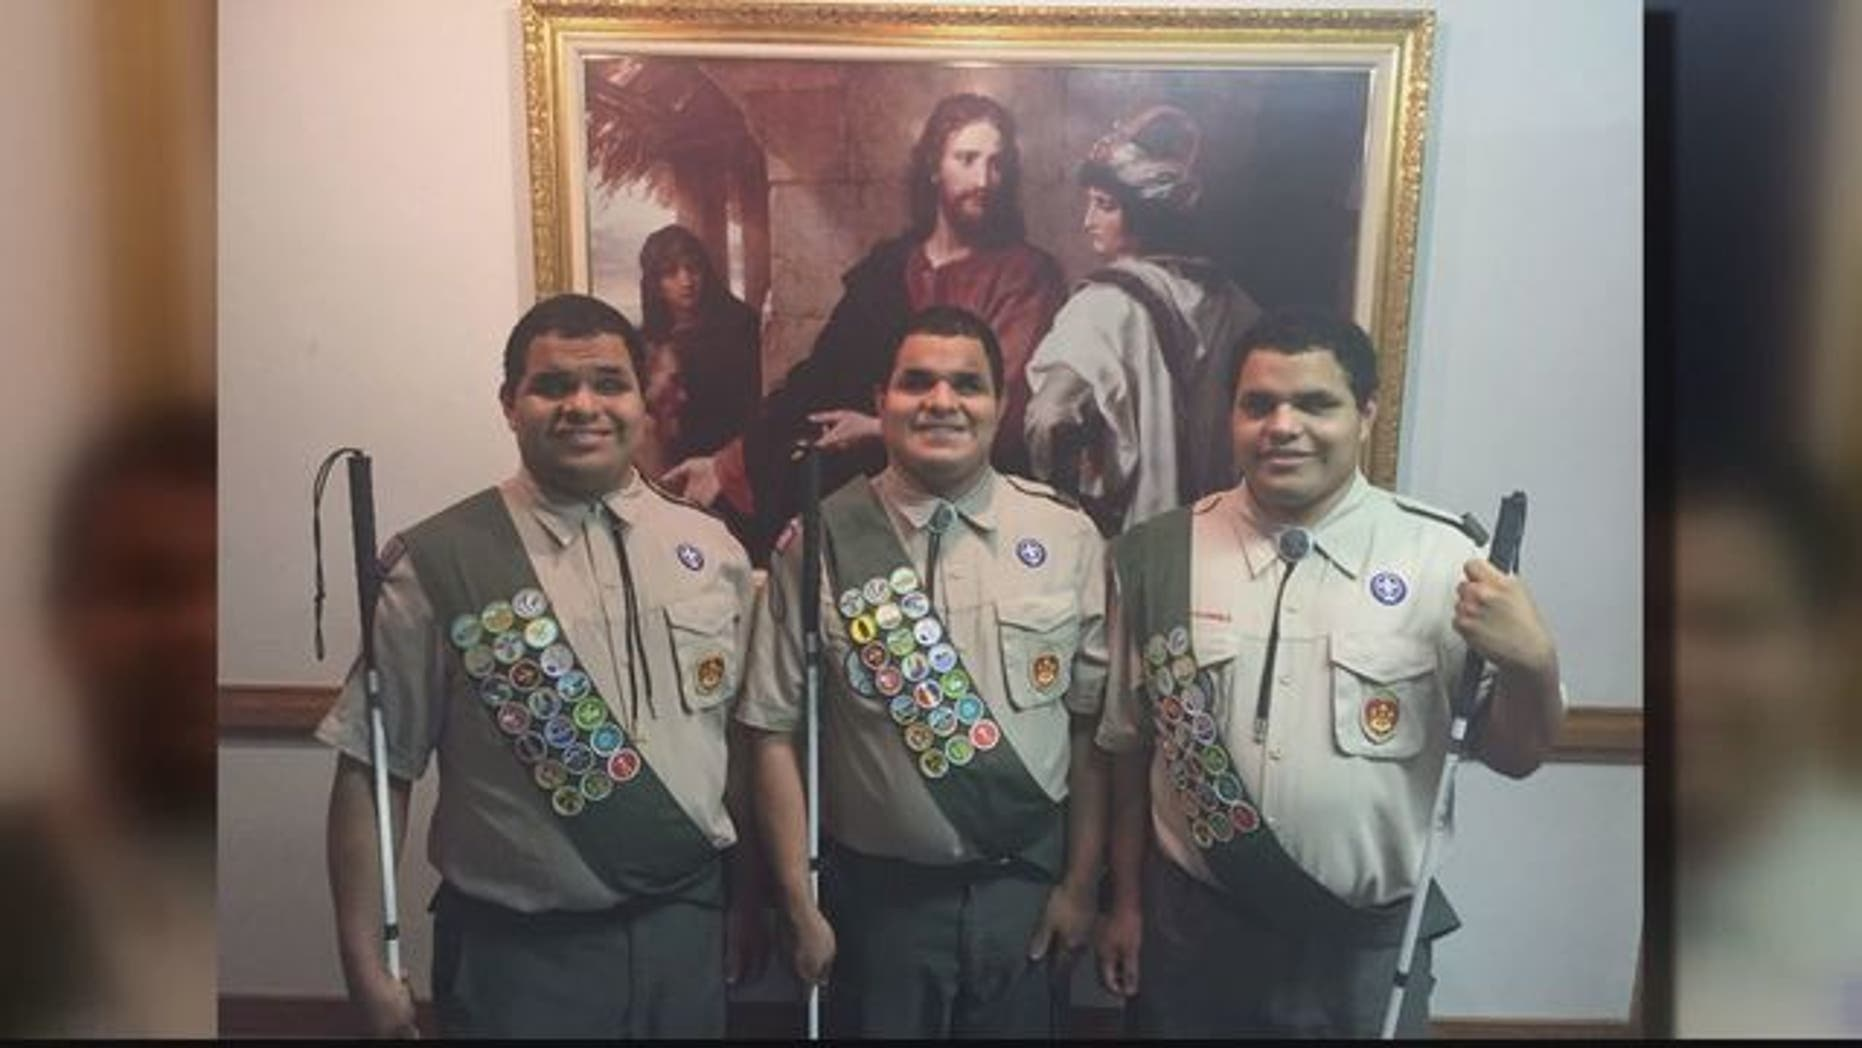 Leo, Nick and Steven Cantos Alexandria, Virginia are three triplets who are blind have been named Eagle Scouts —  the first time in the 107-year history of the Boy Scouts.